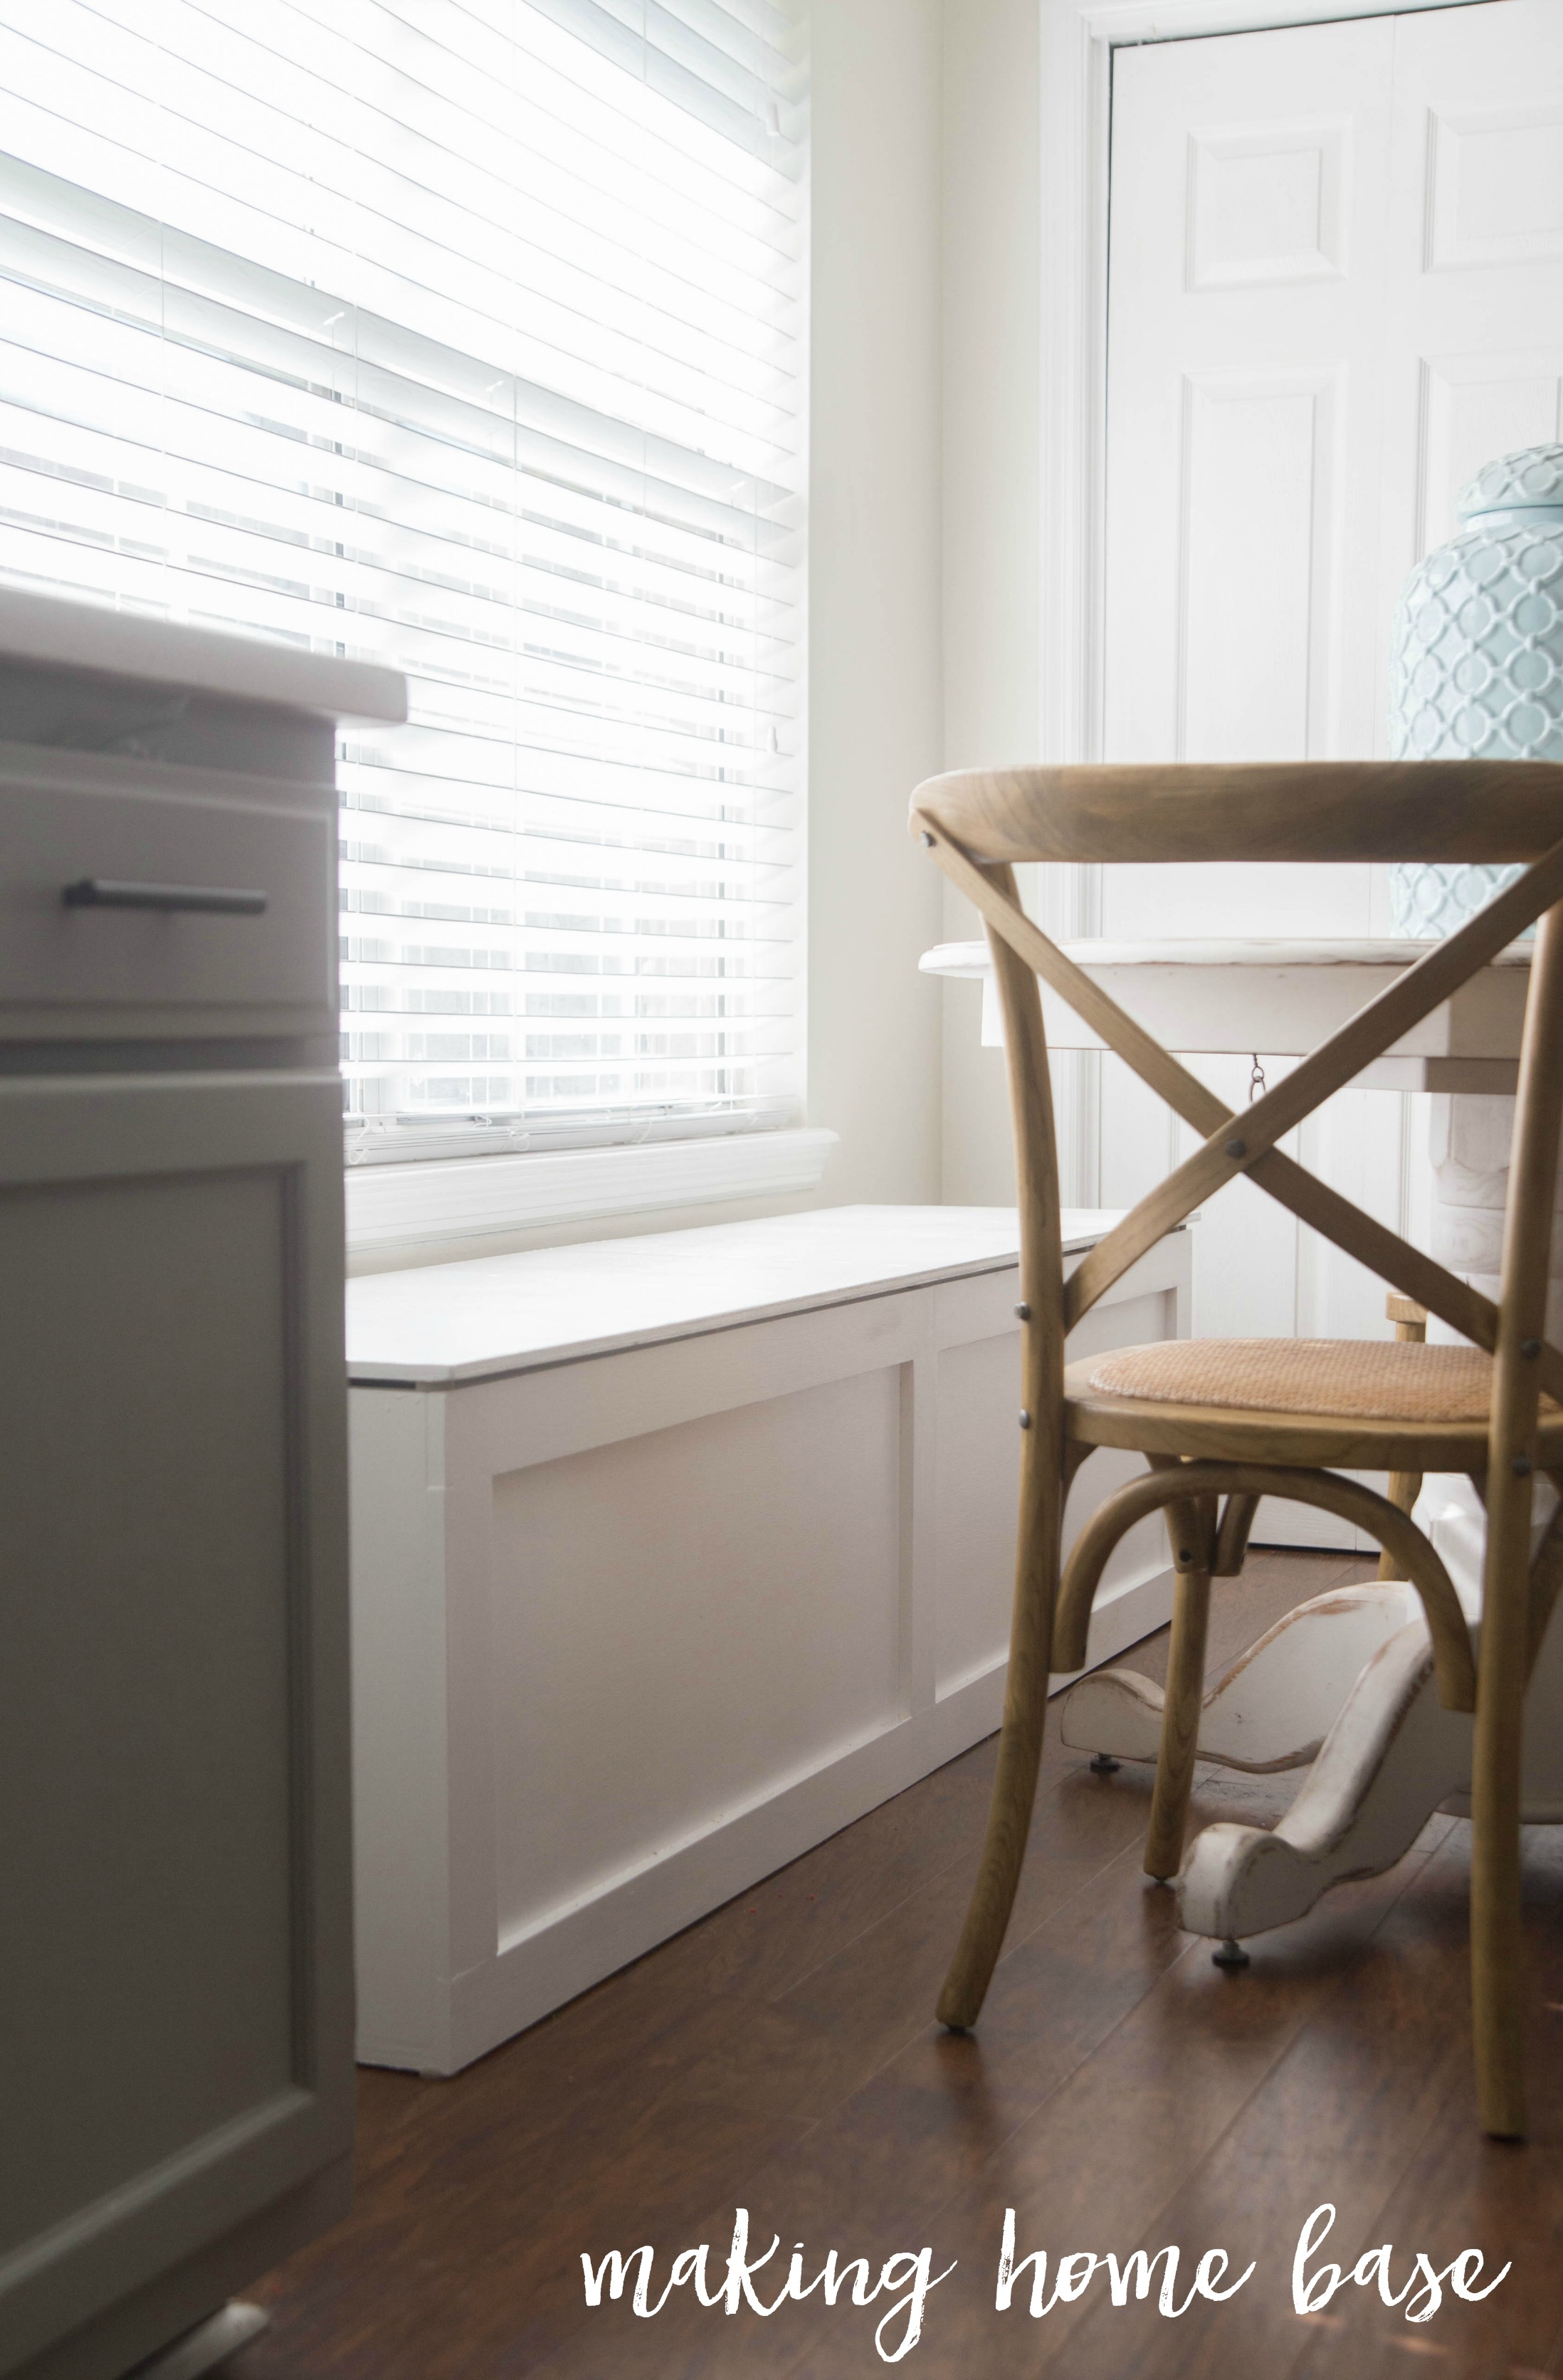 Pictures Of Window Seats how to build a window seat with storage - diy tutorial